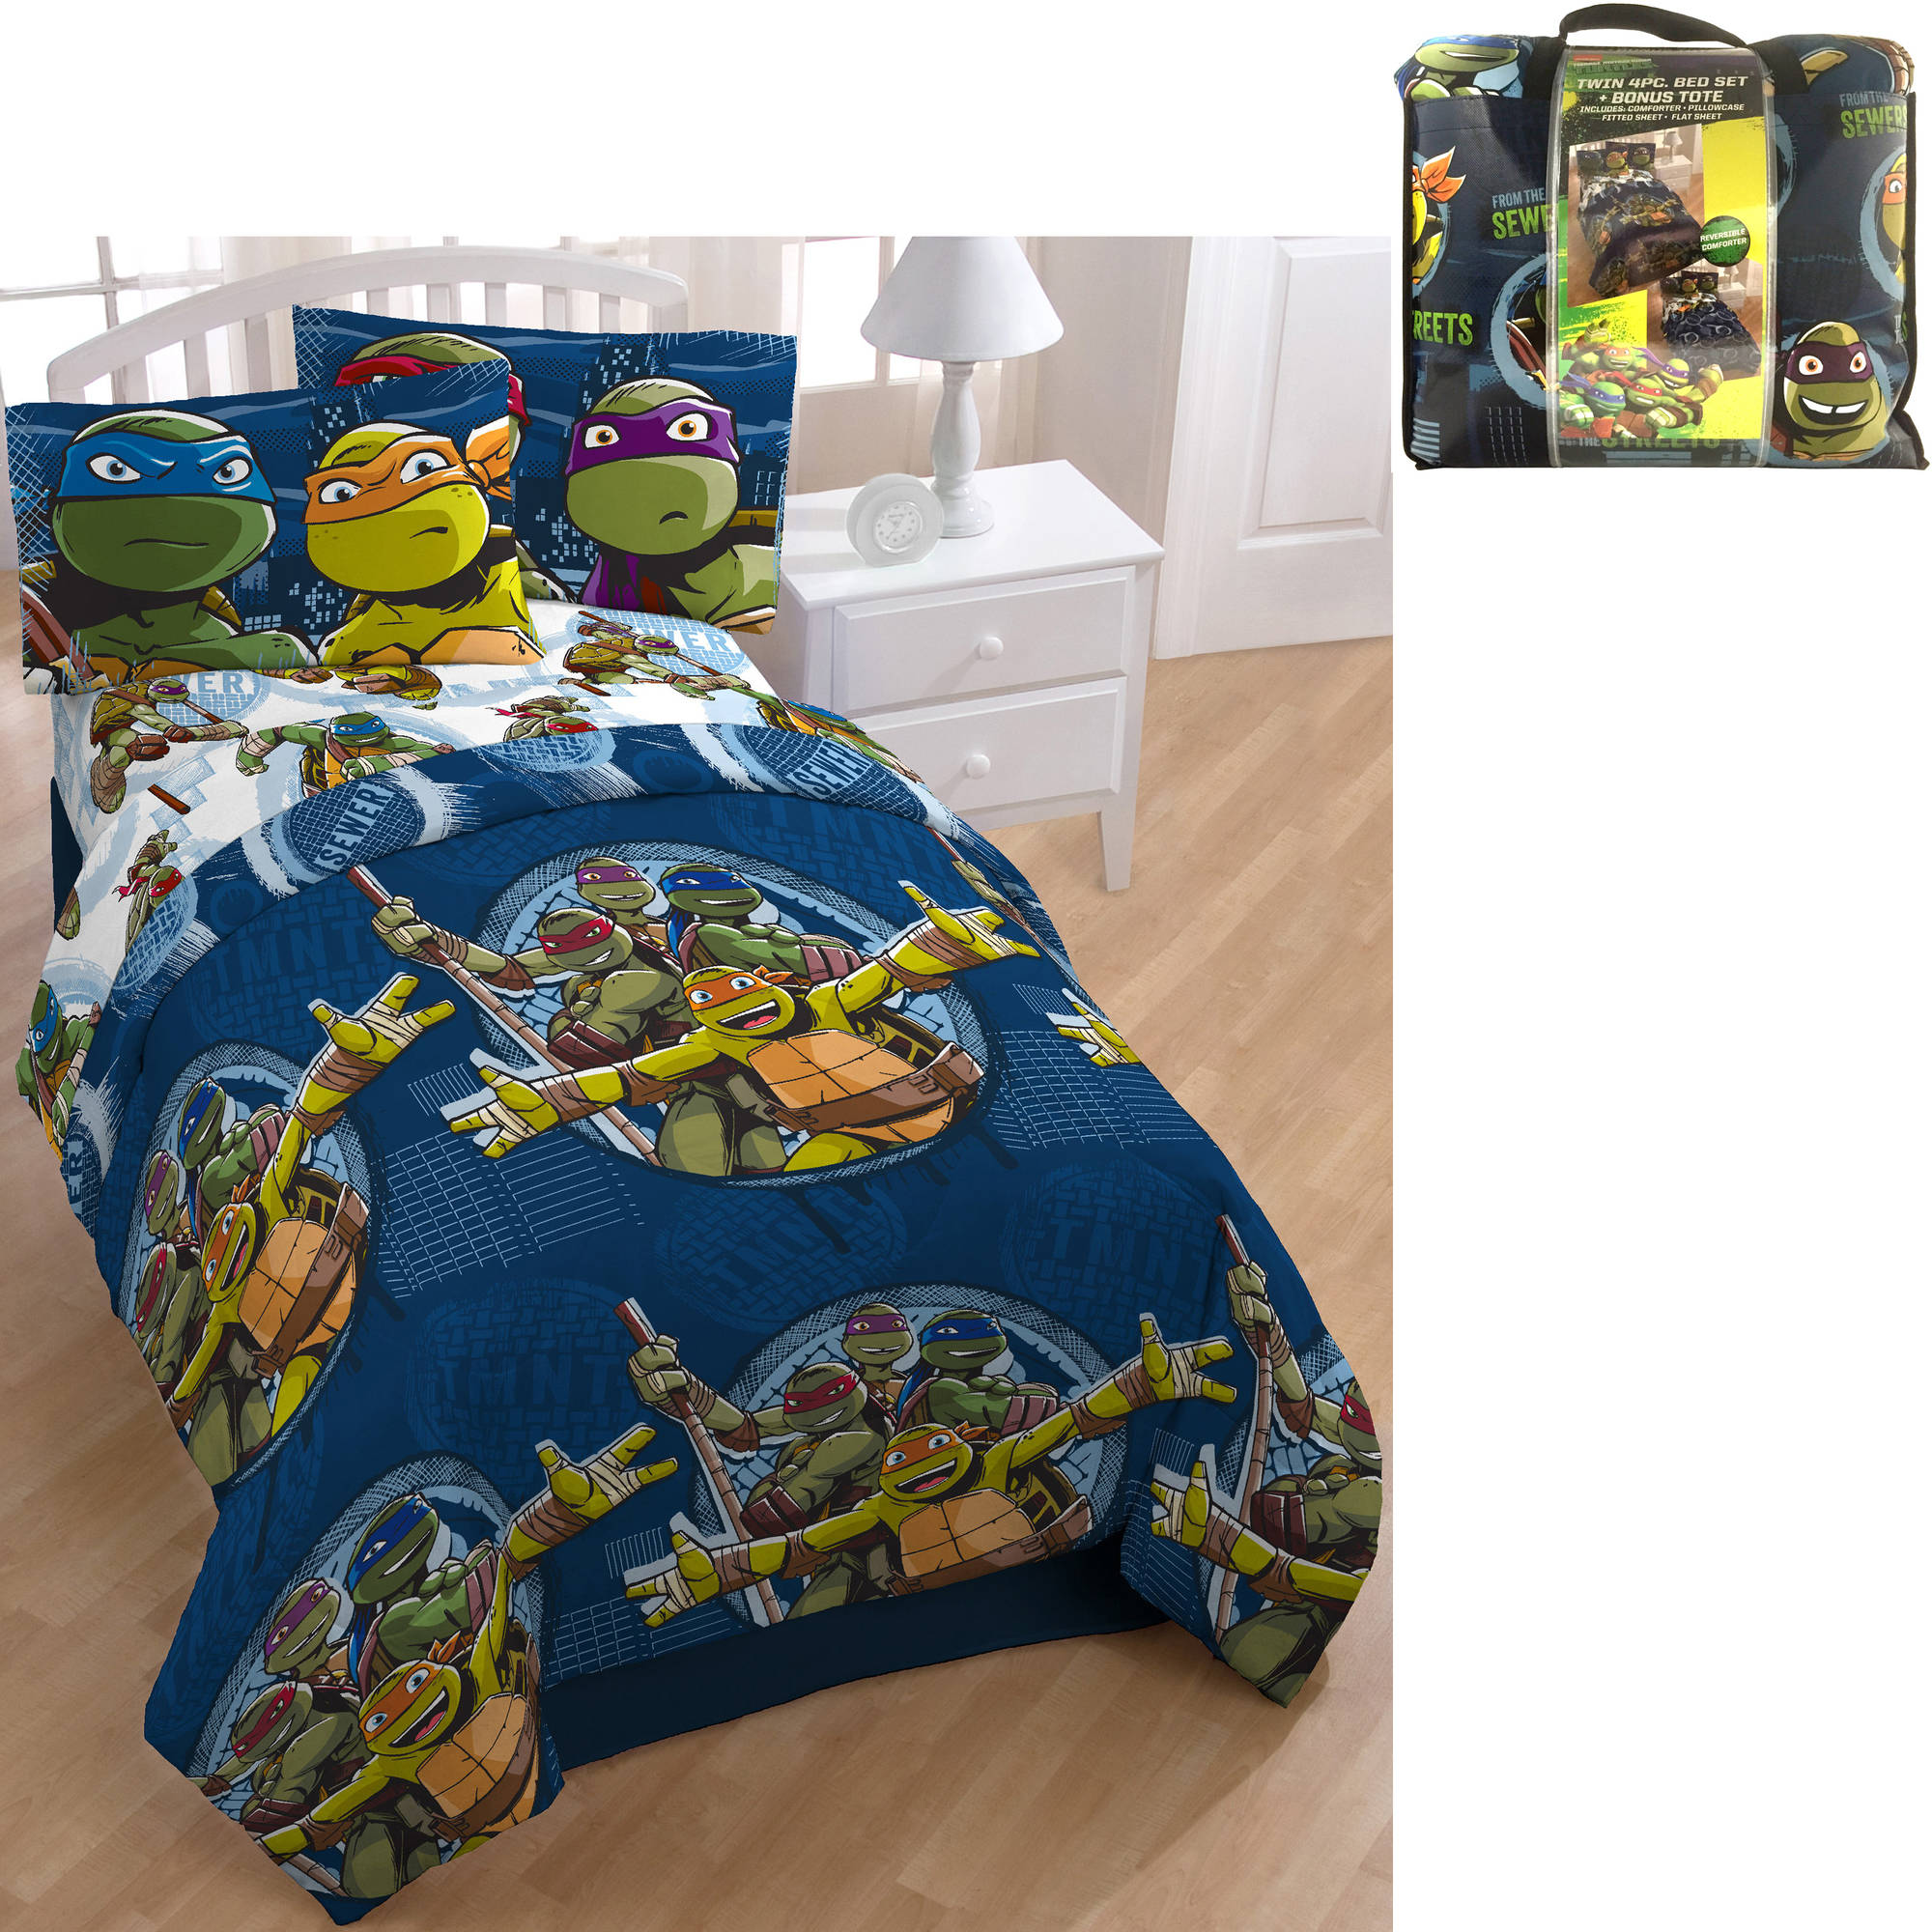 Nickelodeon Teenage Mutant Ninja Turtle Bed in a Bag 5 Piece Bedding Set with BONUS Tote